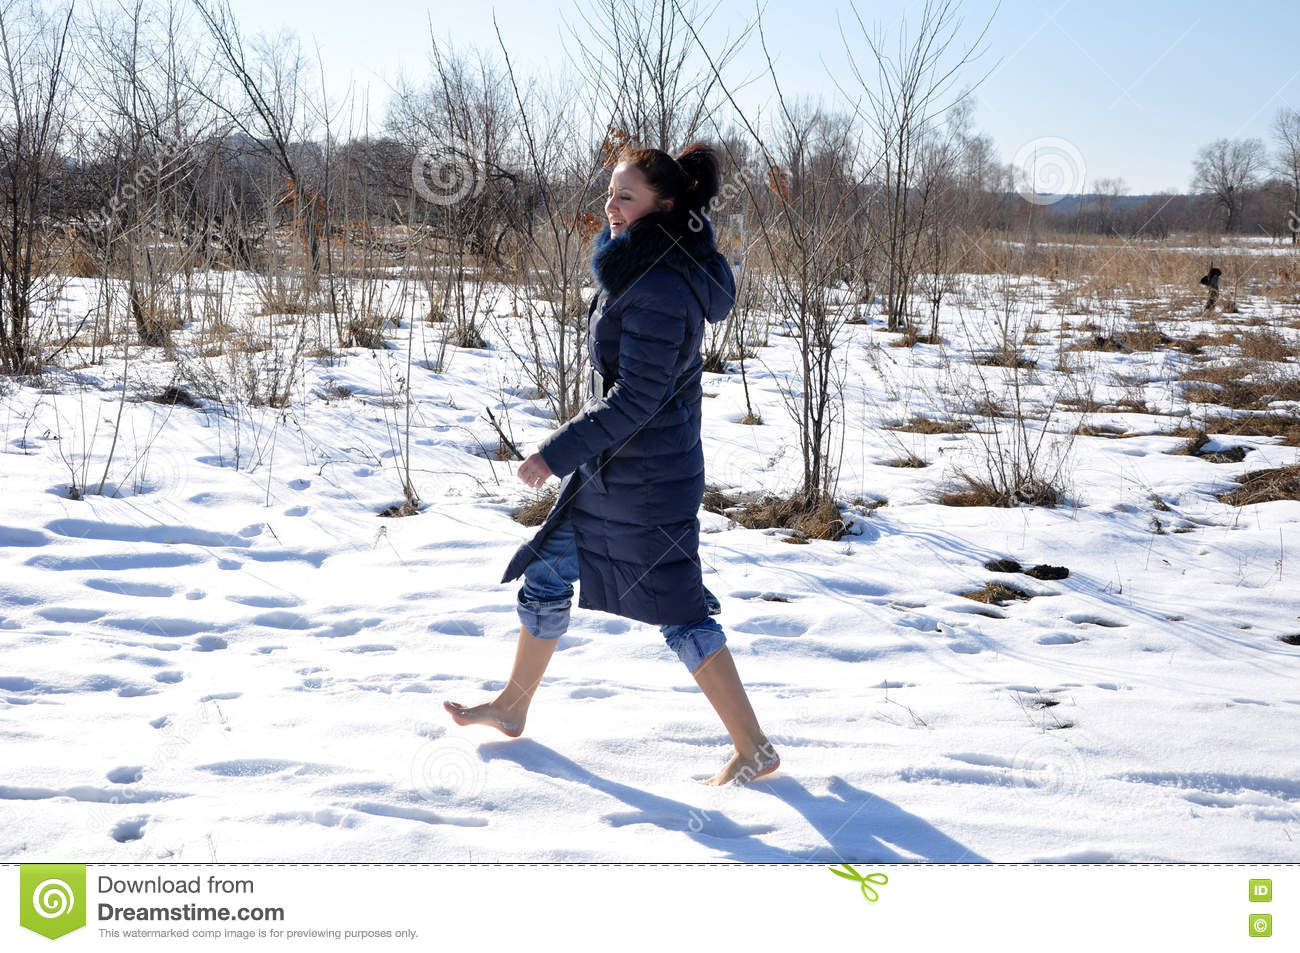 https://thumbs.dreamstime.com/z/pretty-girl-barefoot-walking-snow-cute-young-brunette-blue-winter-coat-fur-sunny-cold-winter-day-natural-white-80547163.jpg